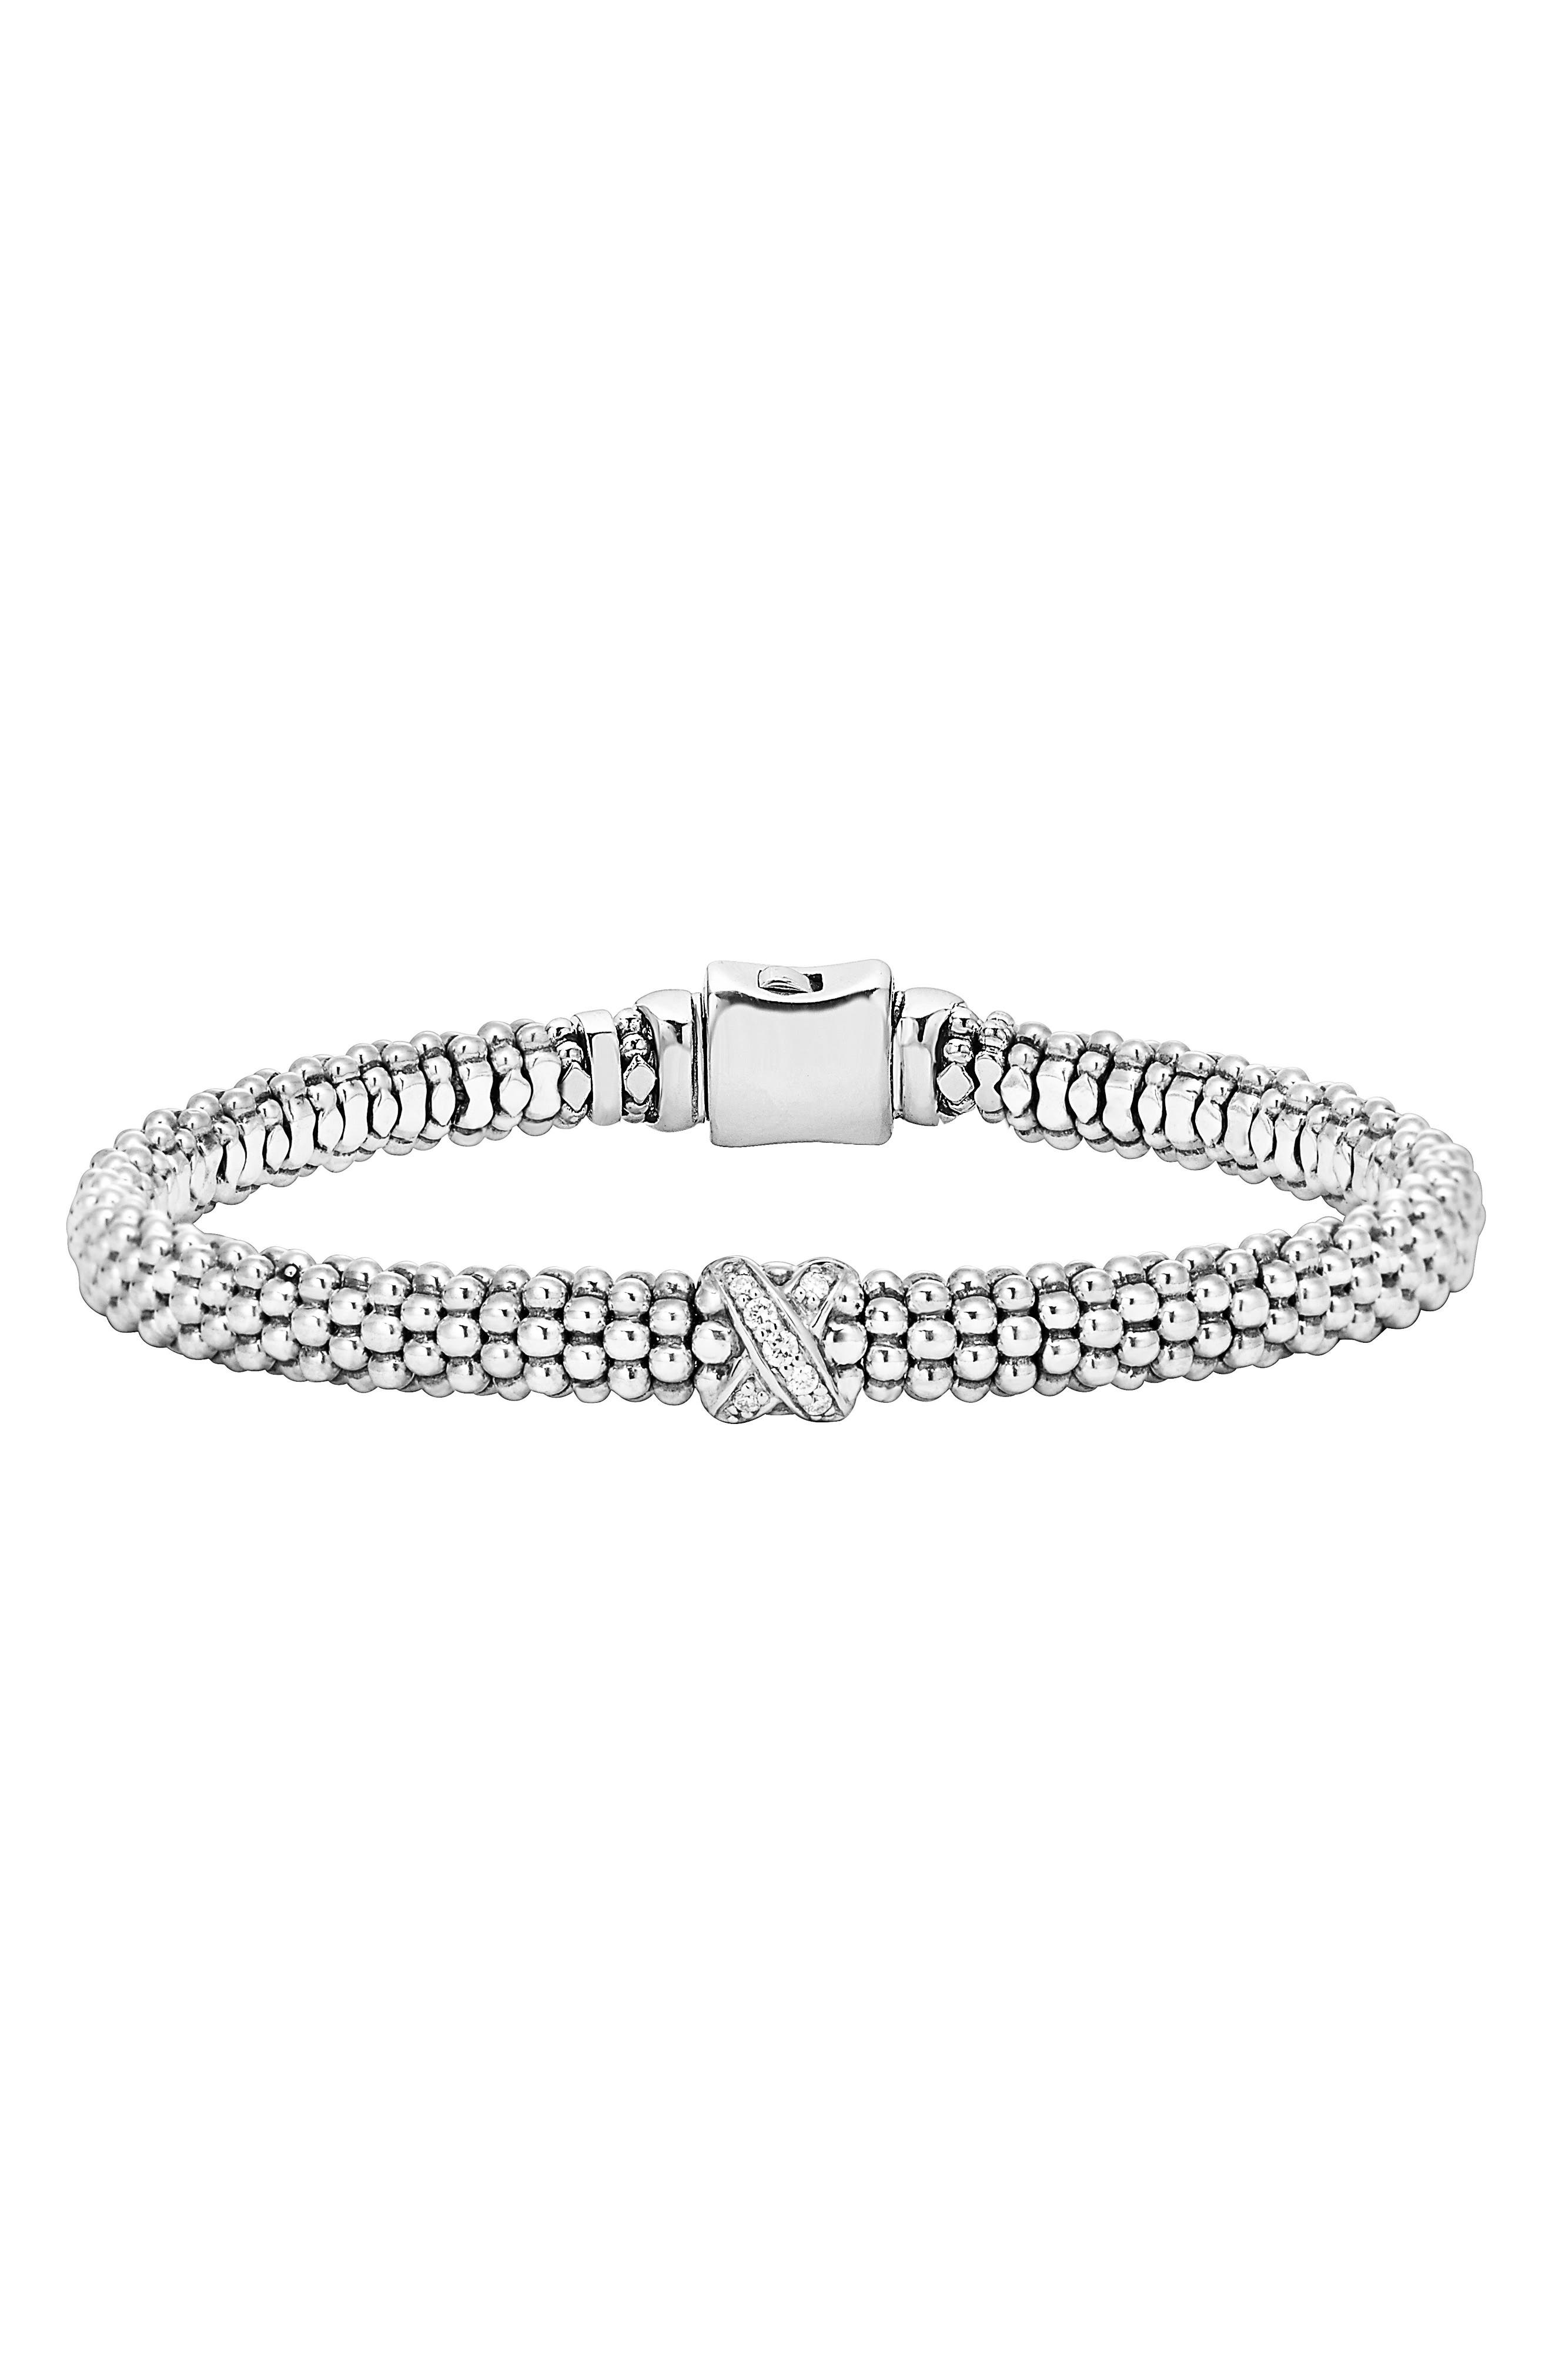 2f7f0d1aea7a5 Sterling Silver Bracelets for Women: Bangle, Cuff, Stacked & More ...